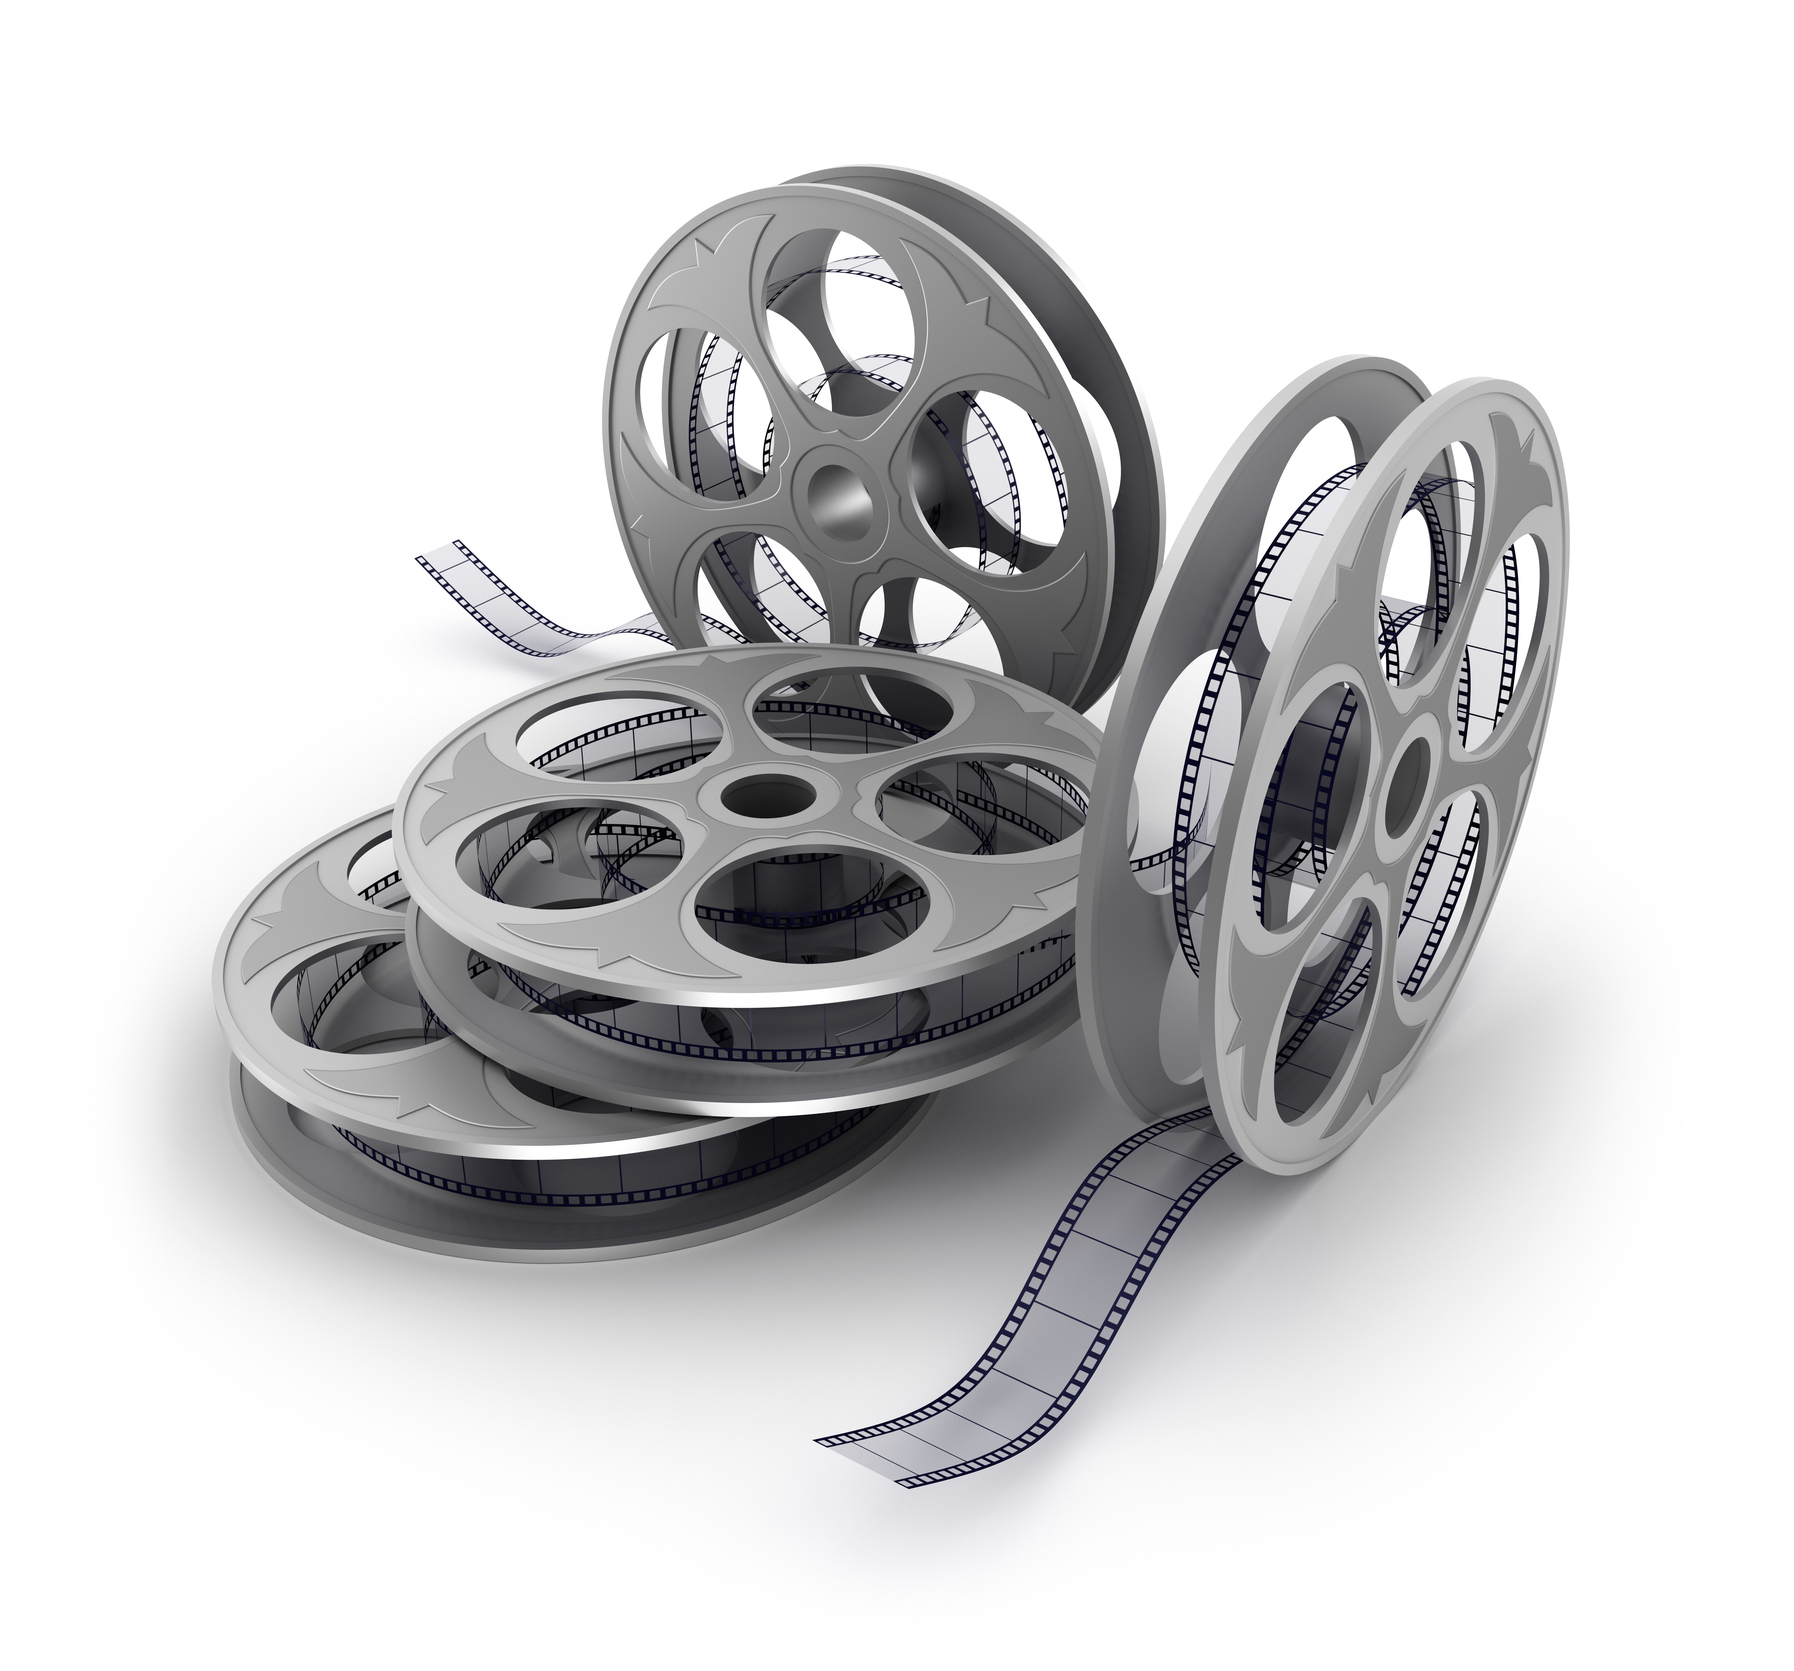 8mm, Super 8 and 16mm film transfer convert to DVD